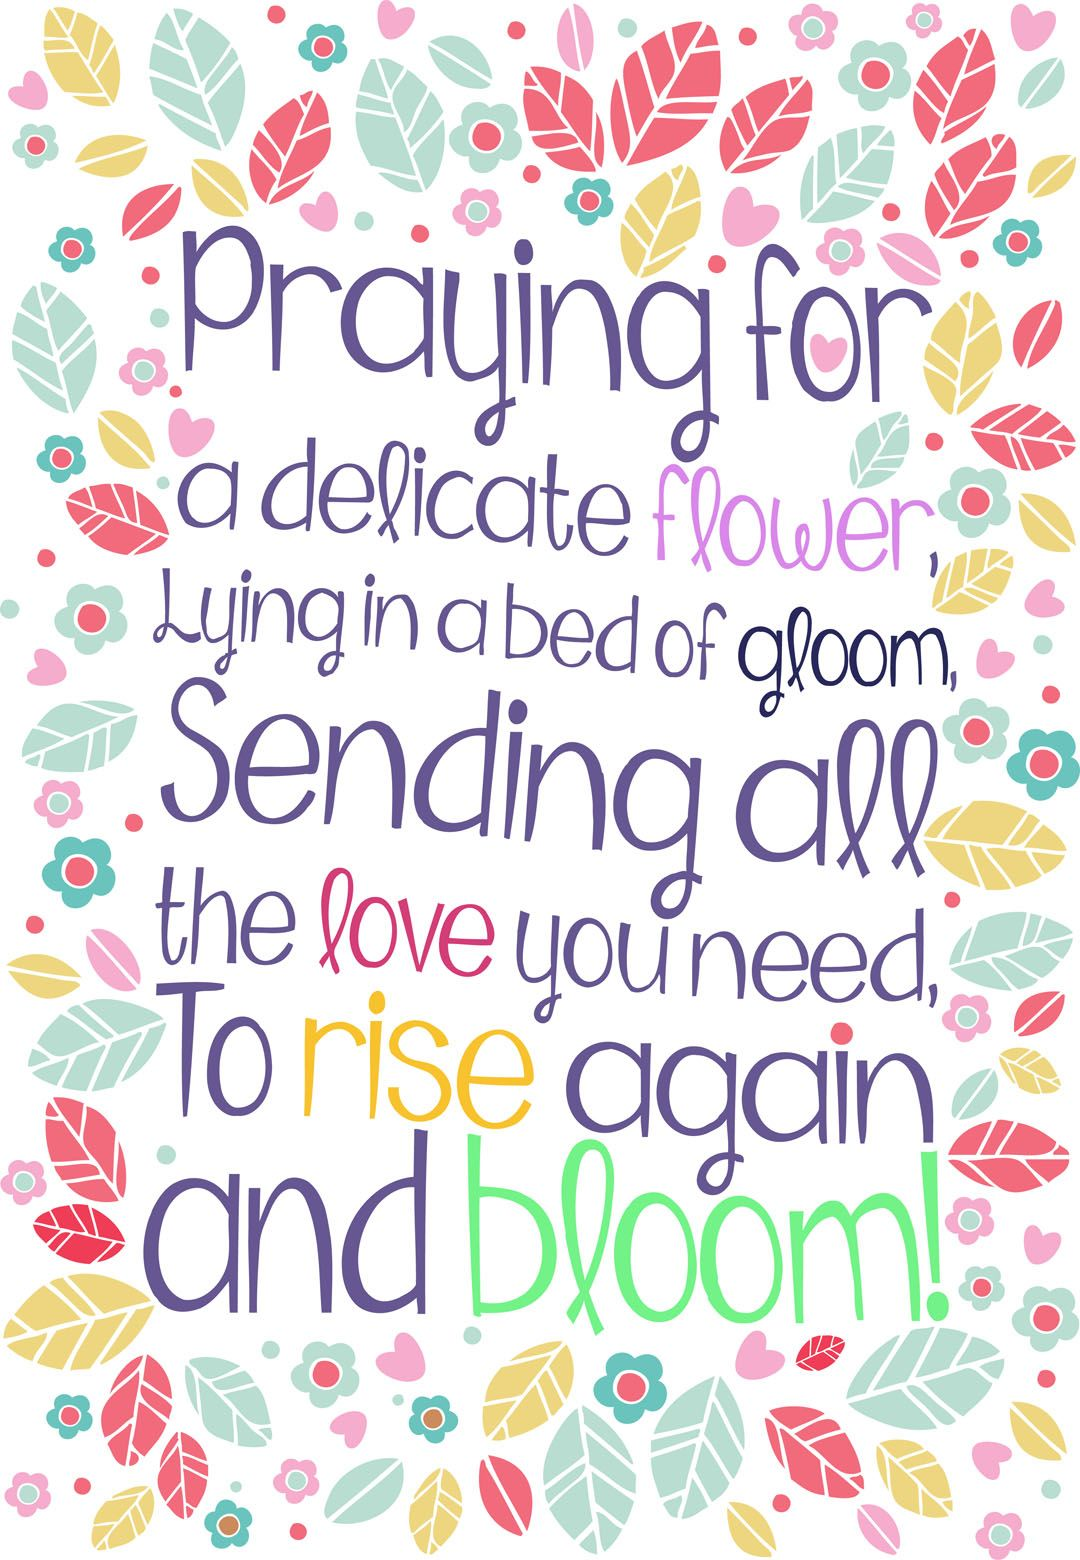 Free Printable Rise Again And Bloom Get Well Greeting Card Get